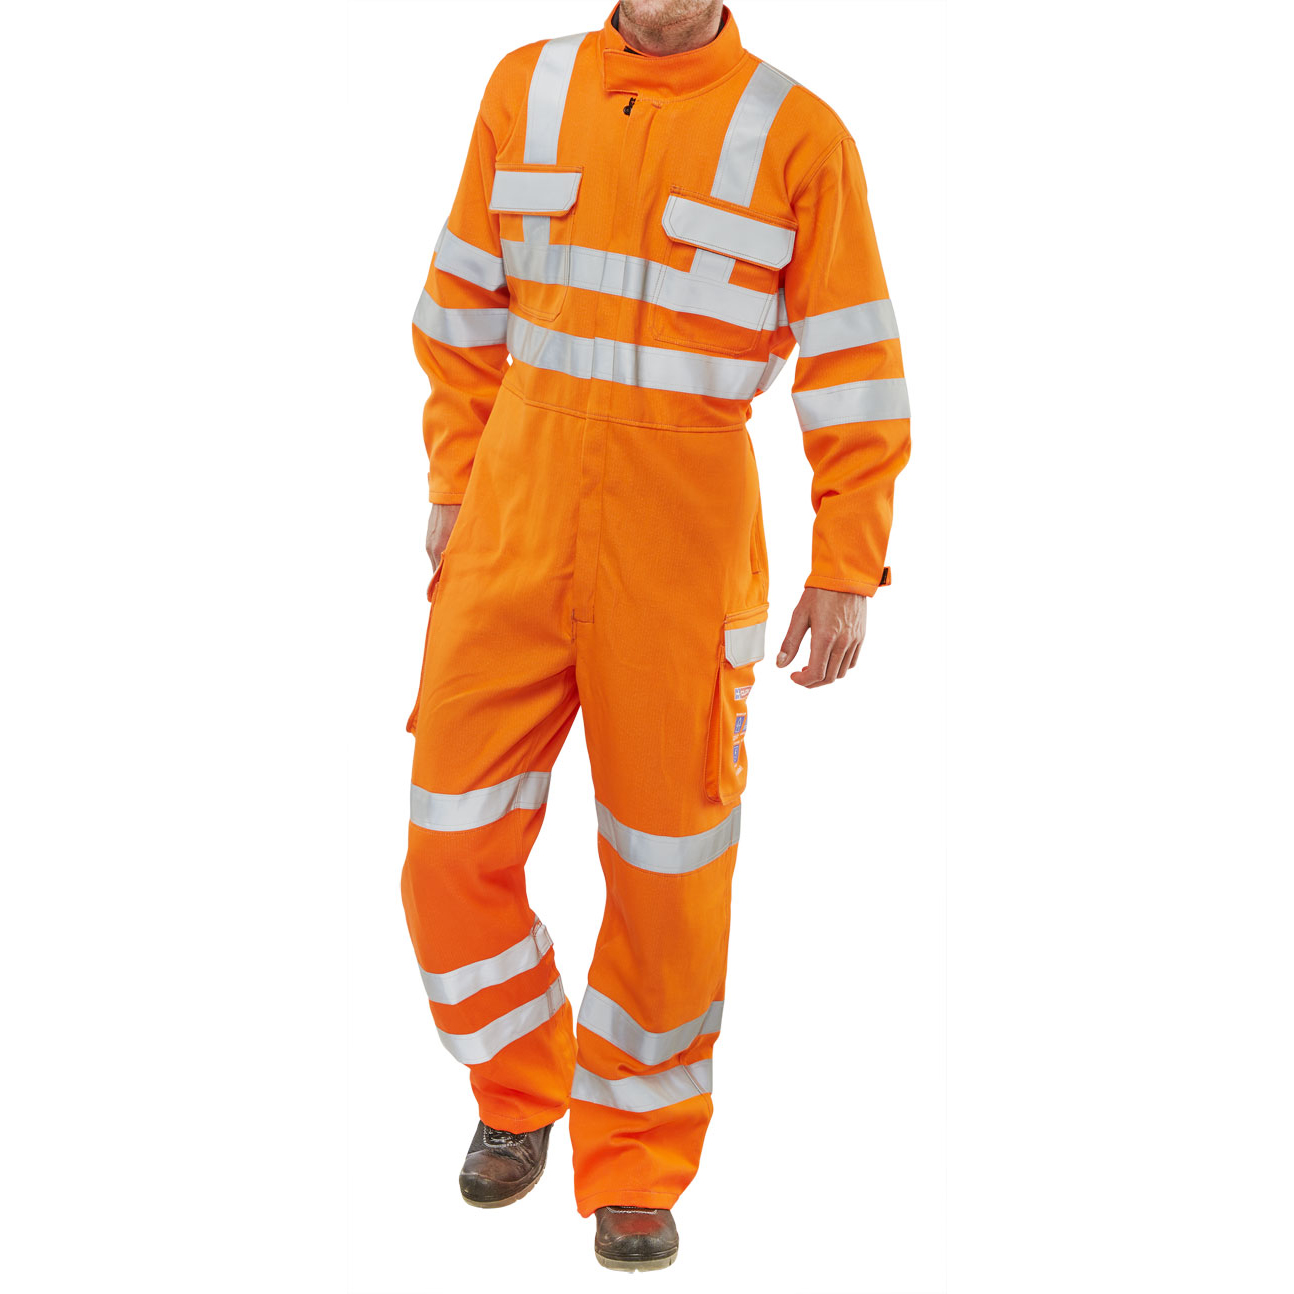 Limitless Click Arc Flash Gort Coveralls Go/RT Hi-Vis Size 50 Orange Ref CARC53OR50 *Up to 3 Day Leadtime*